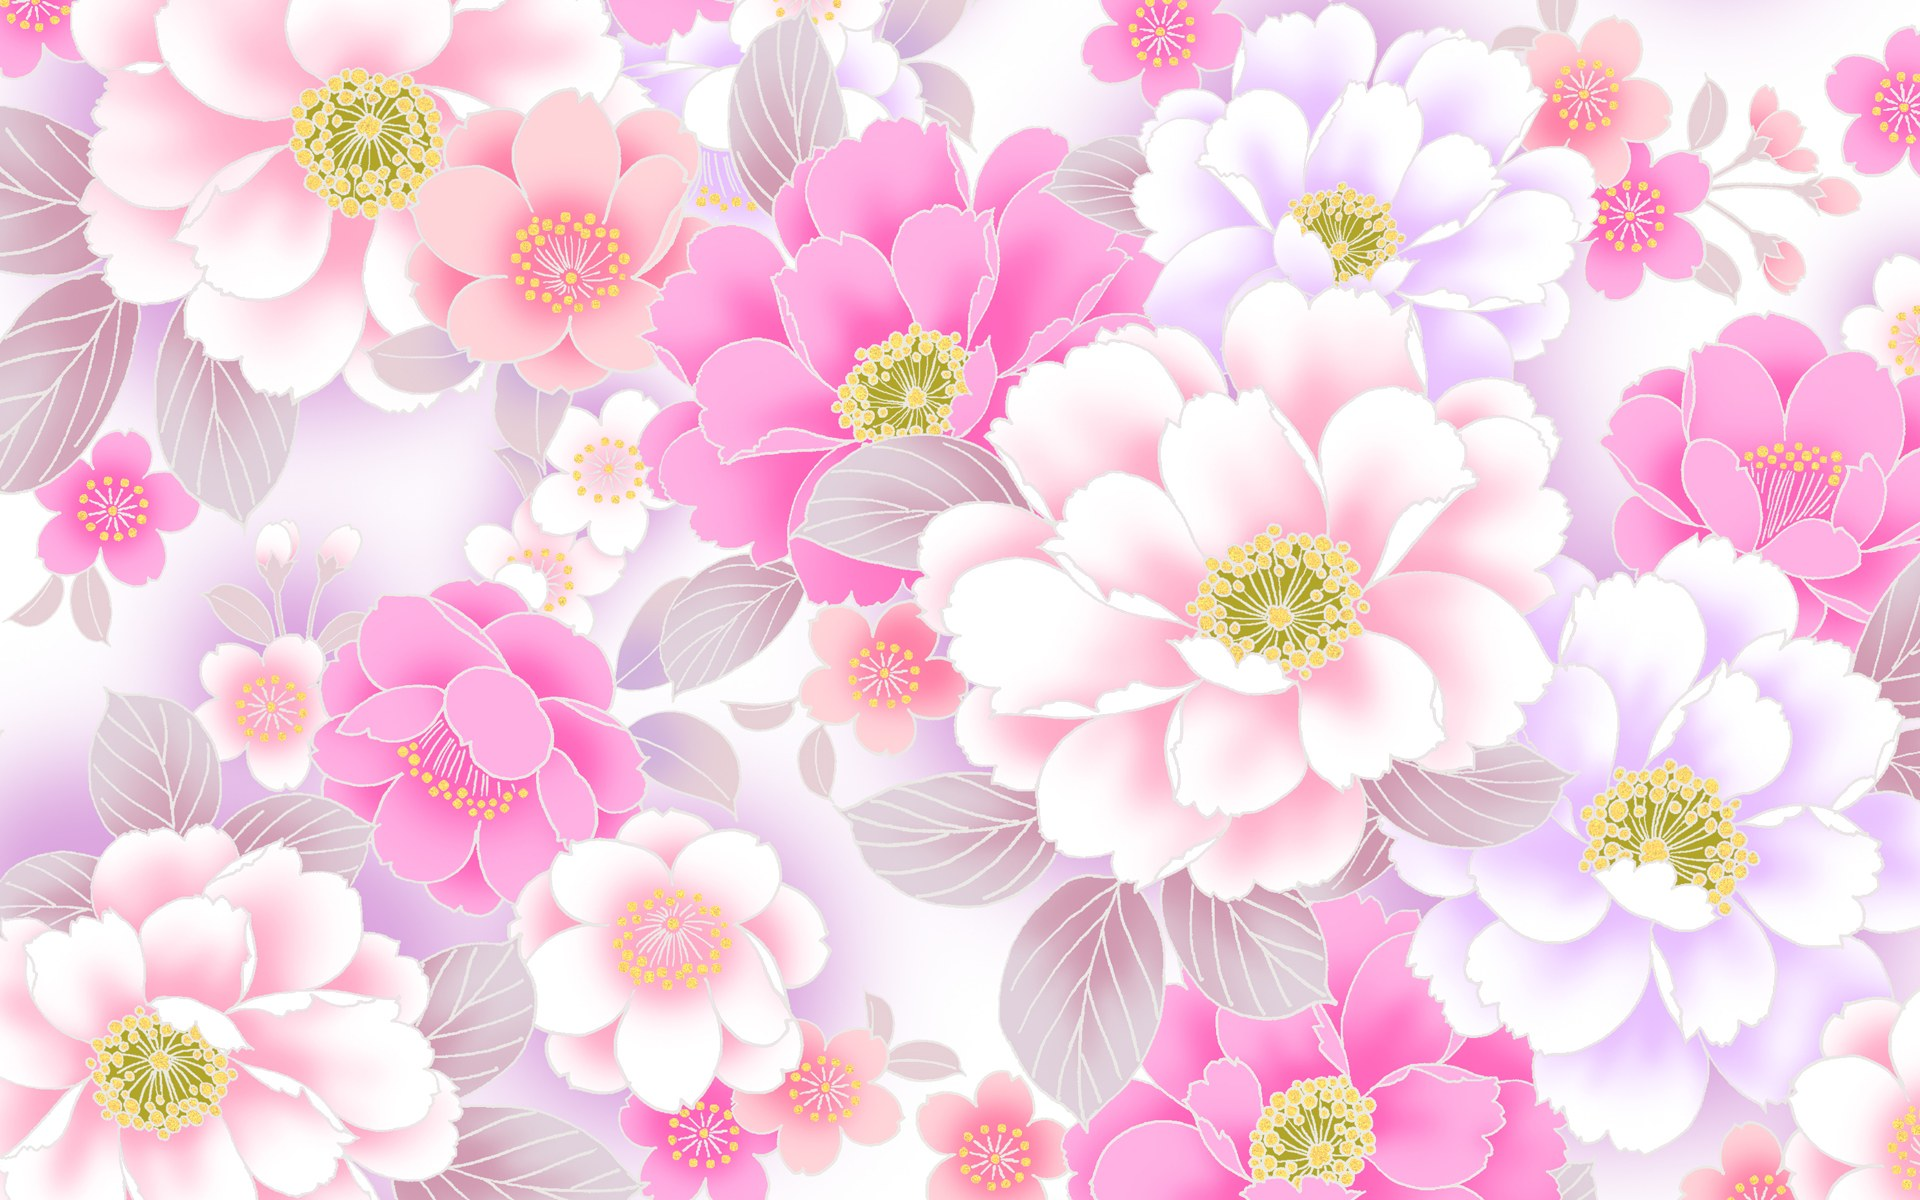 Drops On A Pink Flower Wallpaper Wallpaper Free Download 1920x1200